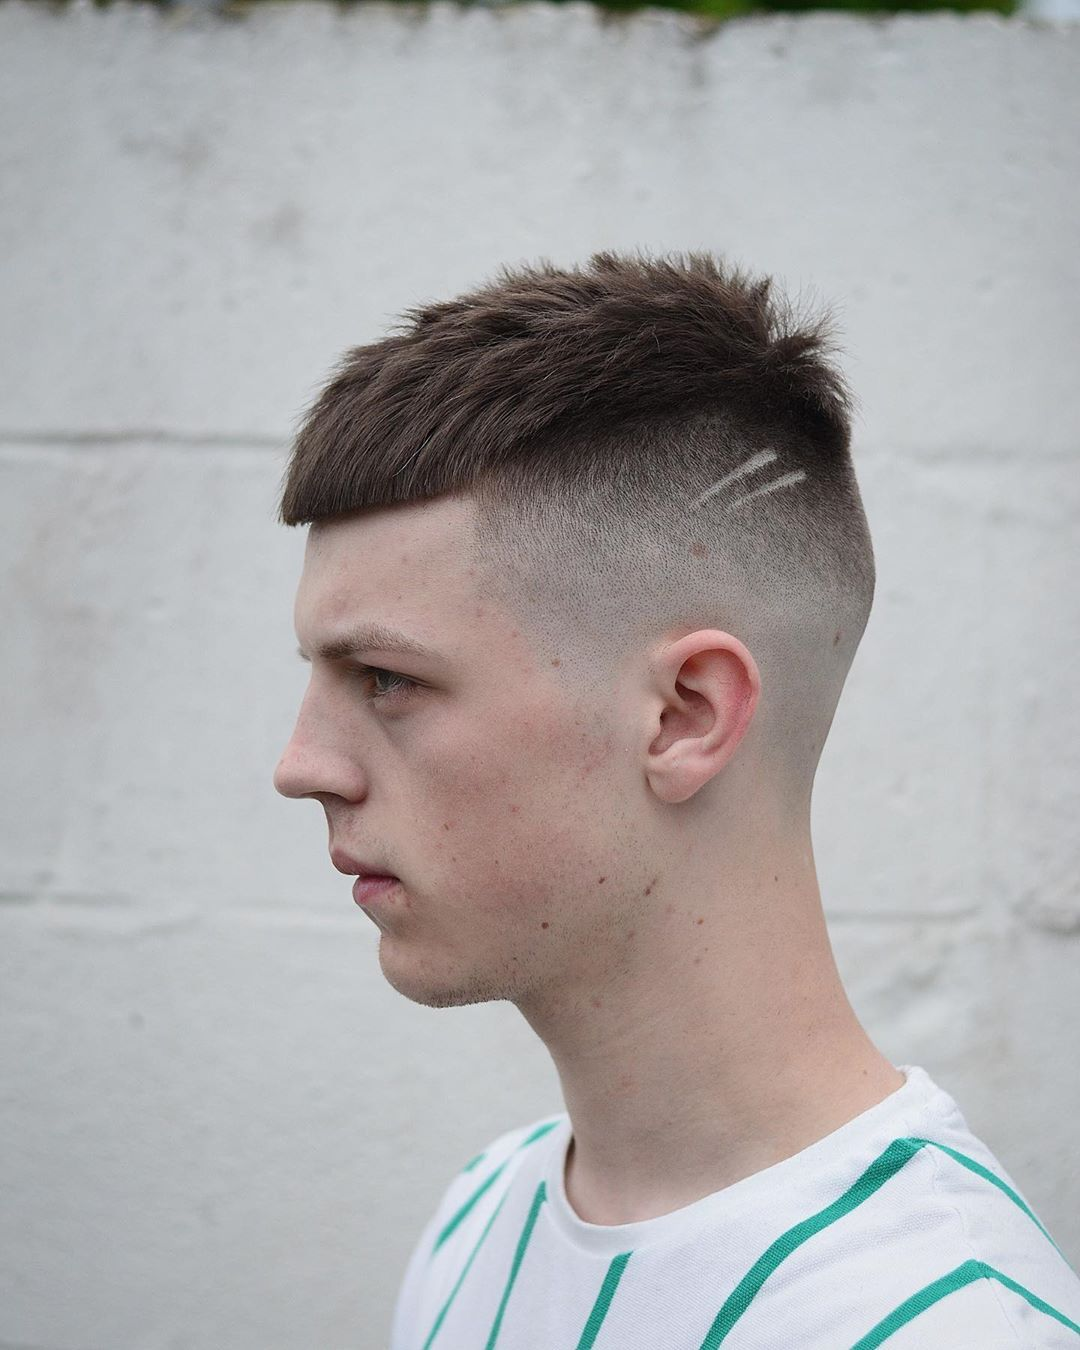 20 Modern Haircuts For Men Latest Trends For 2020 Mens Haircuts Short Haircuts For Men Modern Mens Haircuts